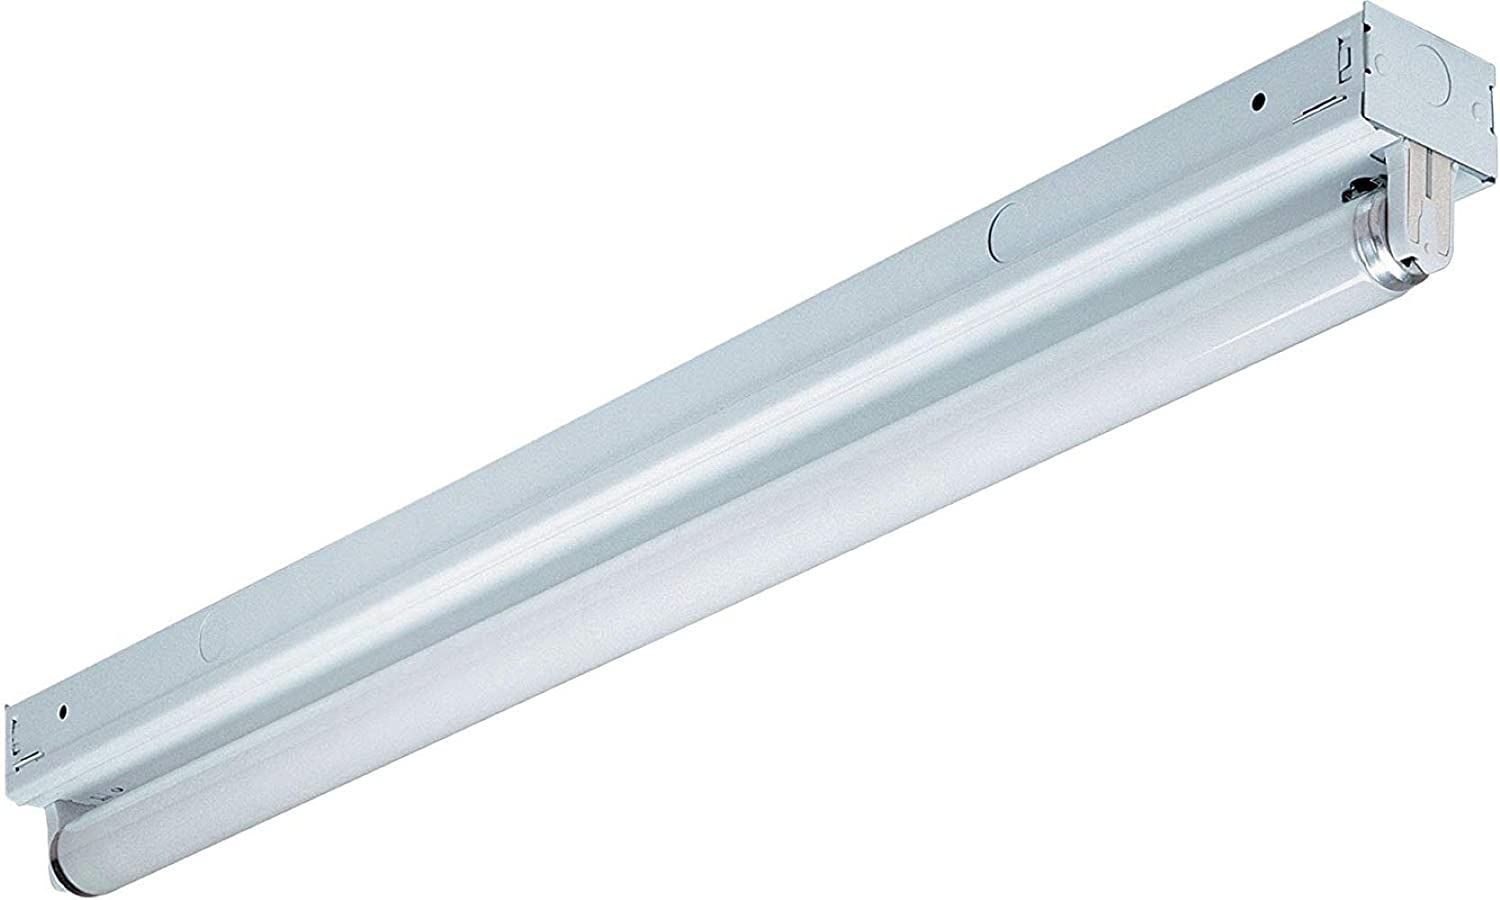 Lithonia Lighting MNS8 1 25 120 RE Fixture Fluor Strip Rs 25W 3Ft 3-Foot T8 lamp